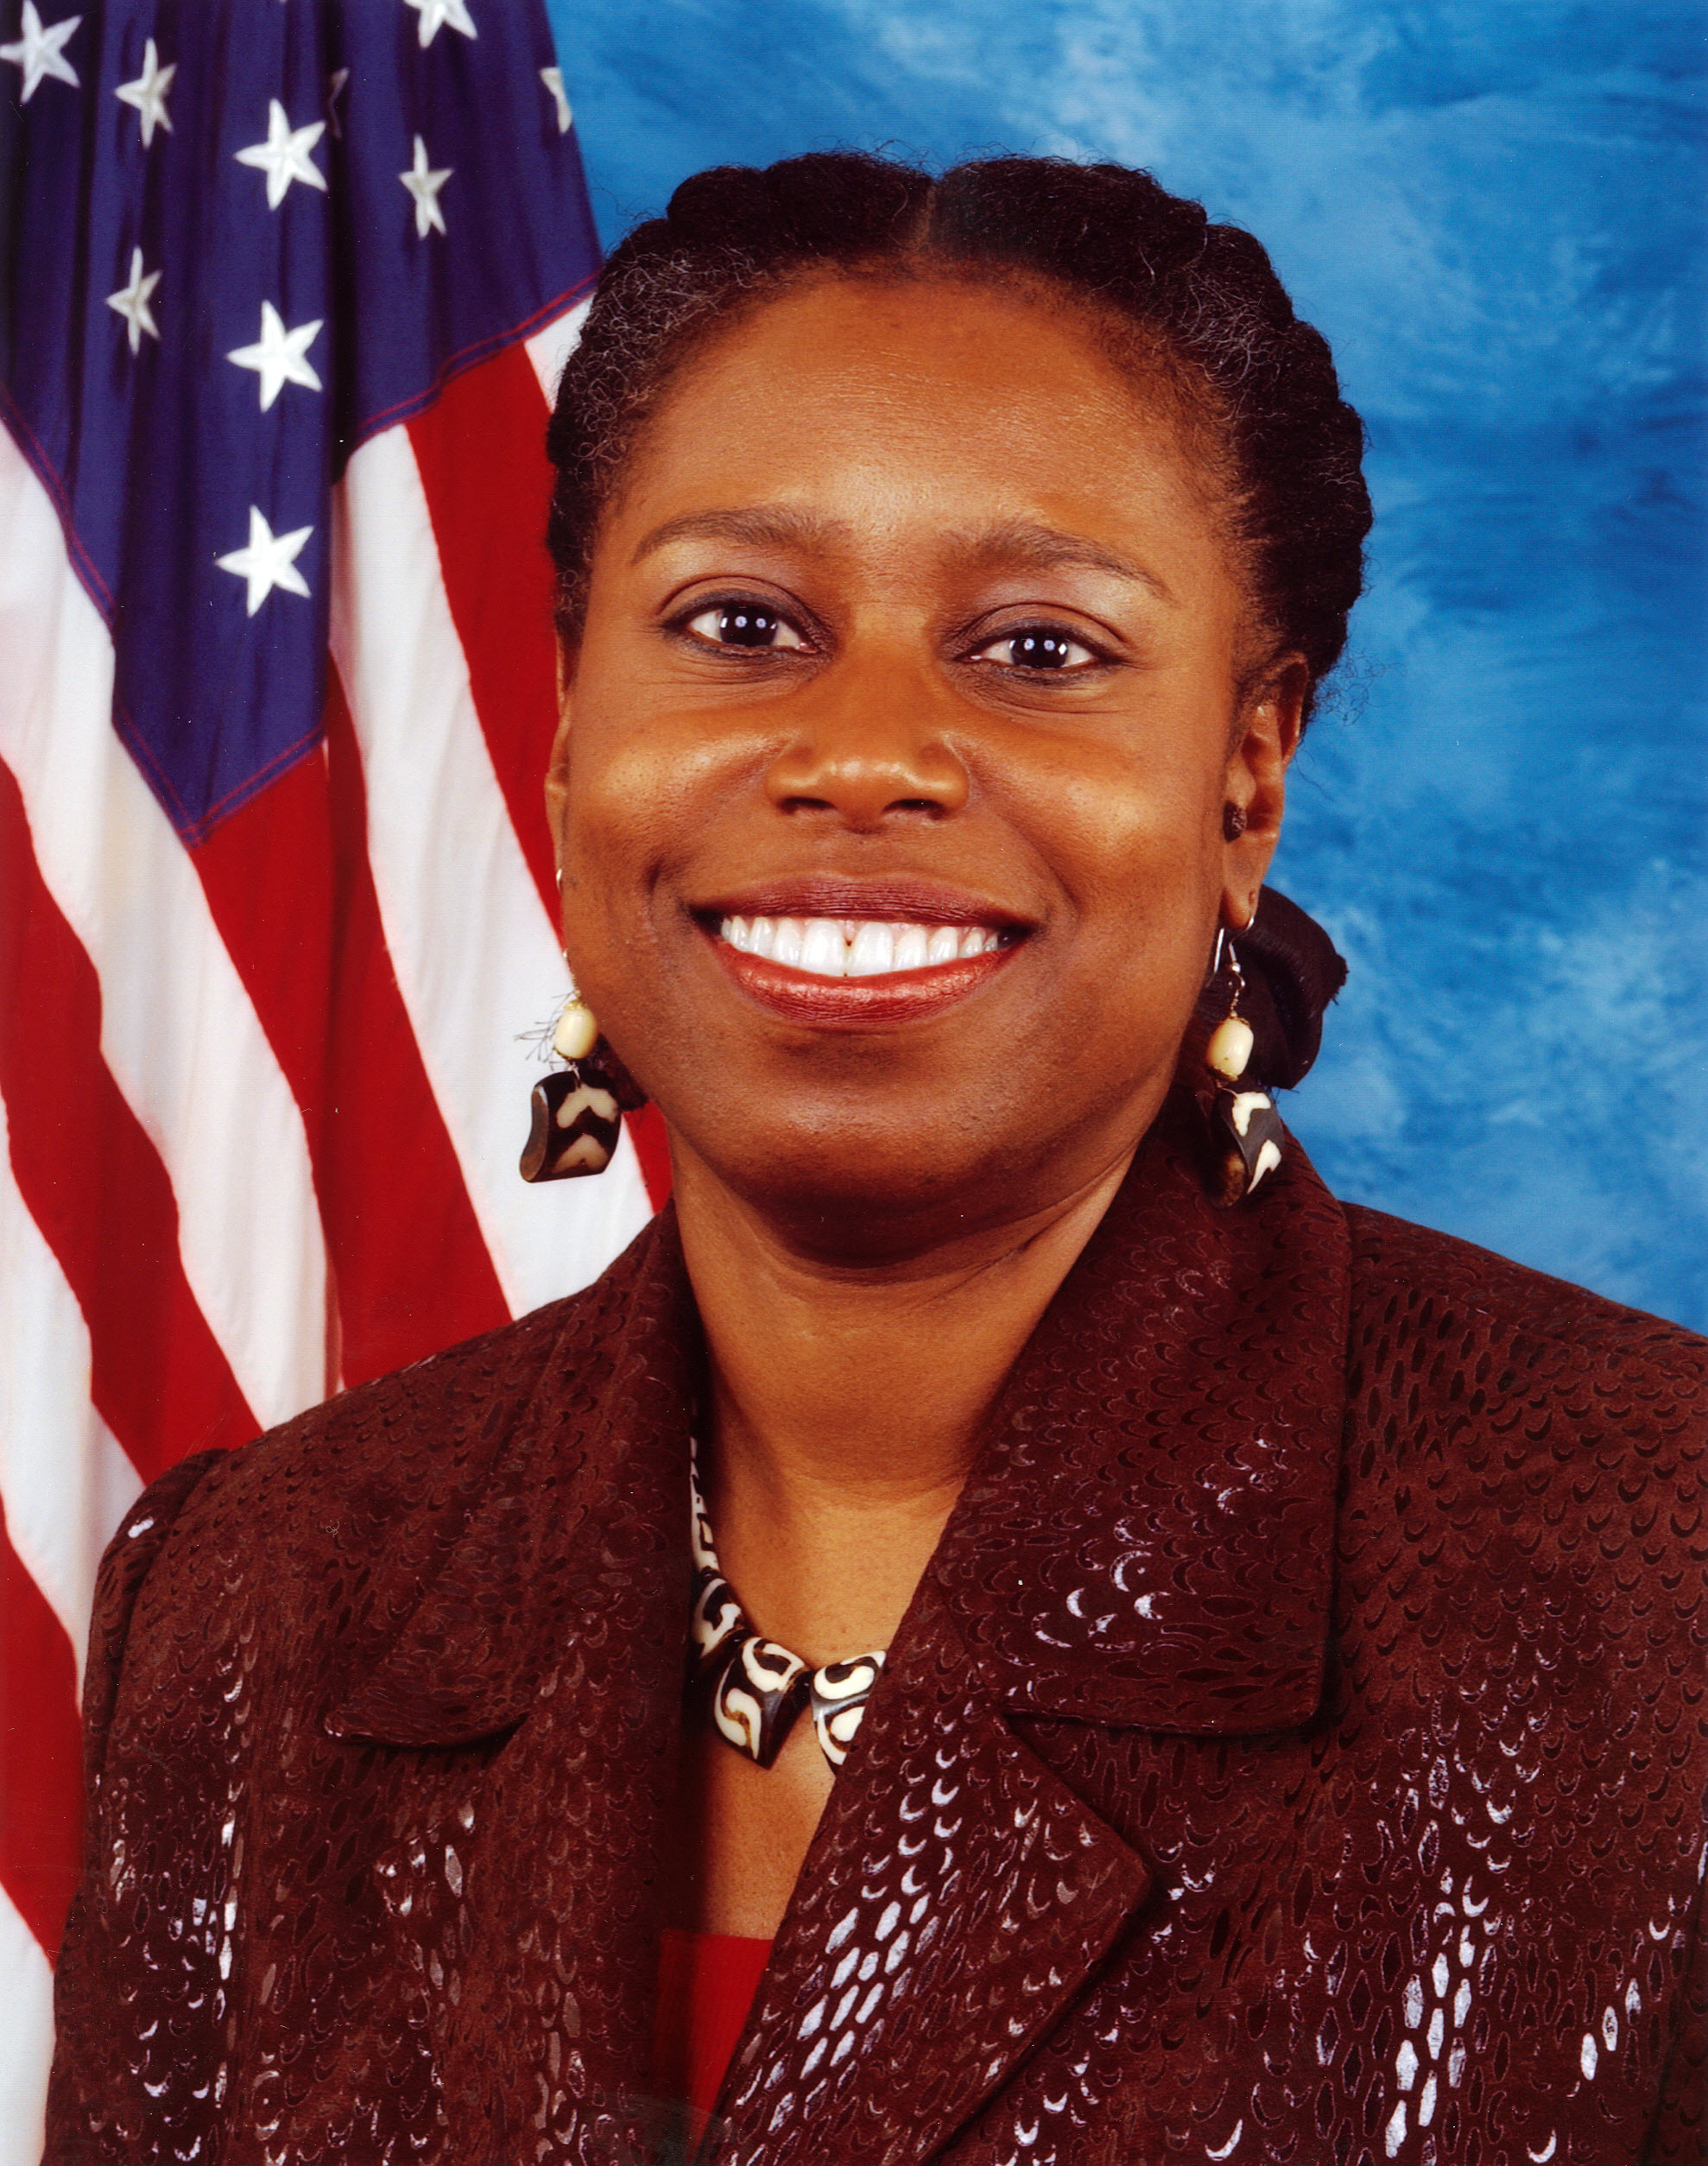 Cynthia McKinney Former GA Rep. Cynthia McKinney to Run for Old Congressional Seat on Green Party Ticket